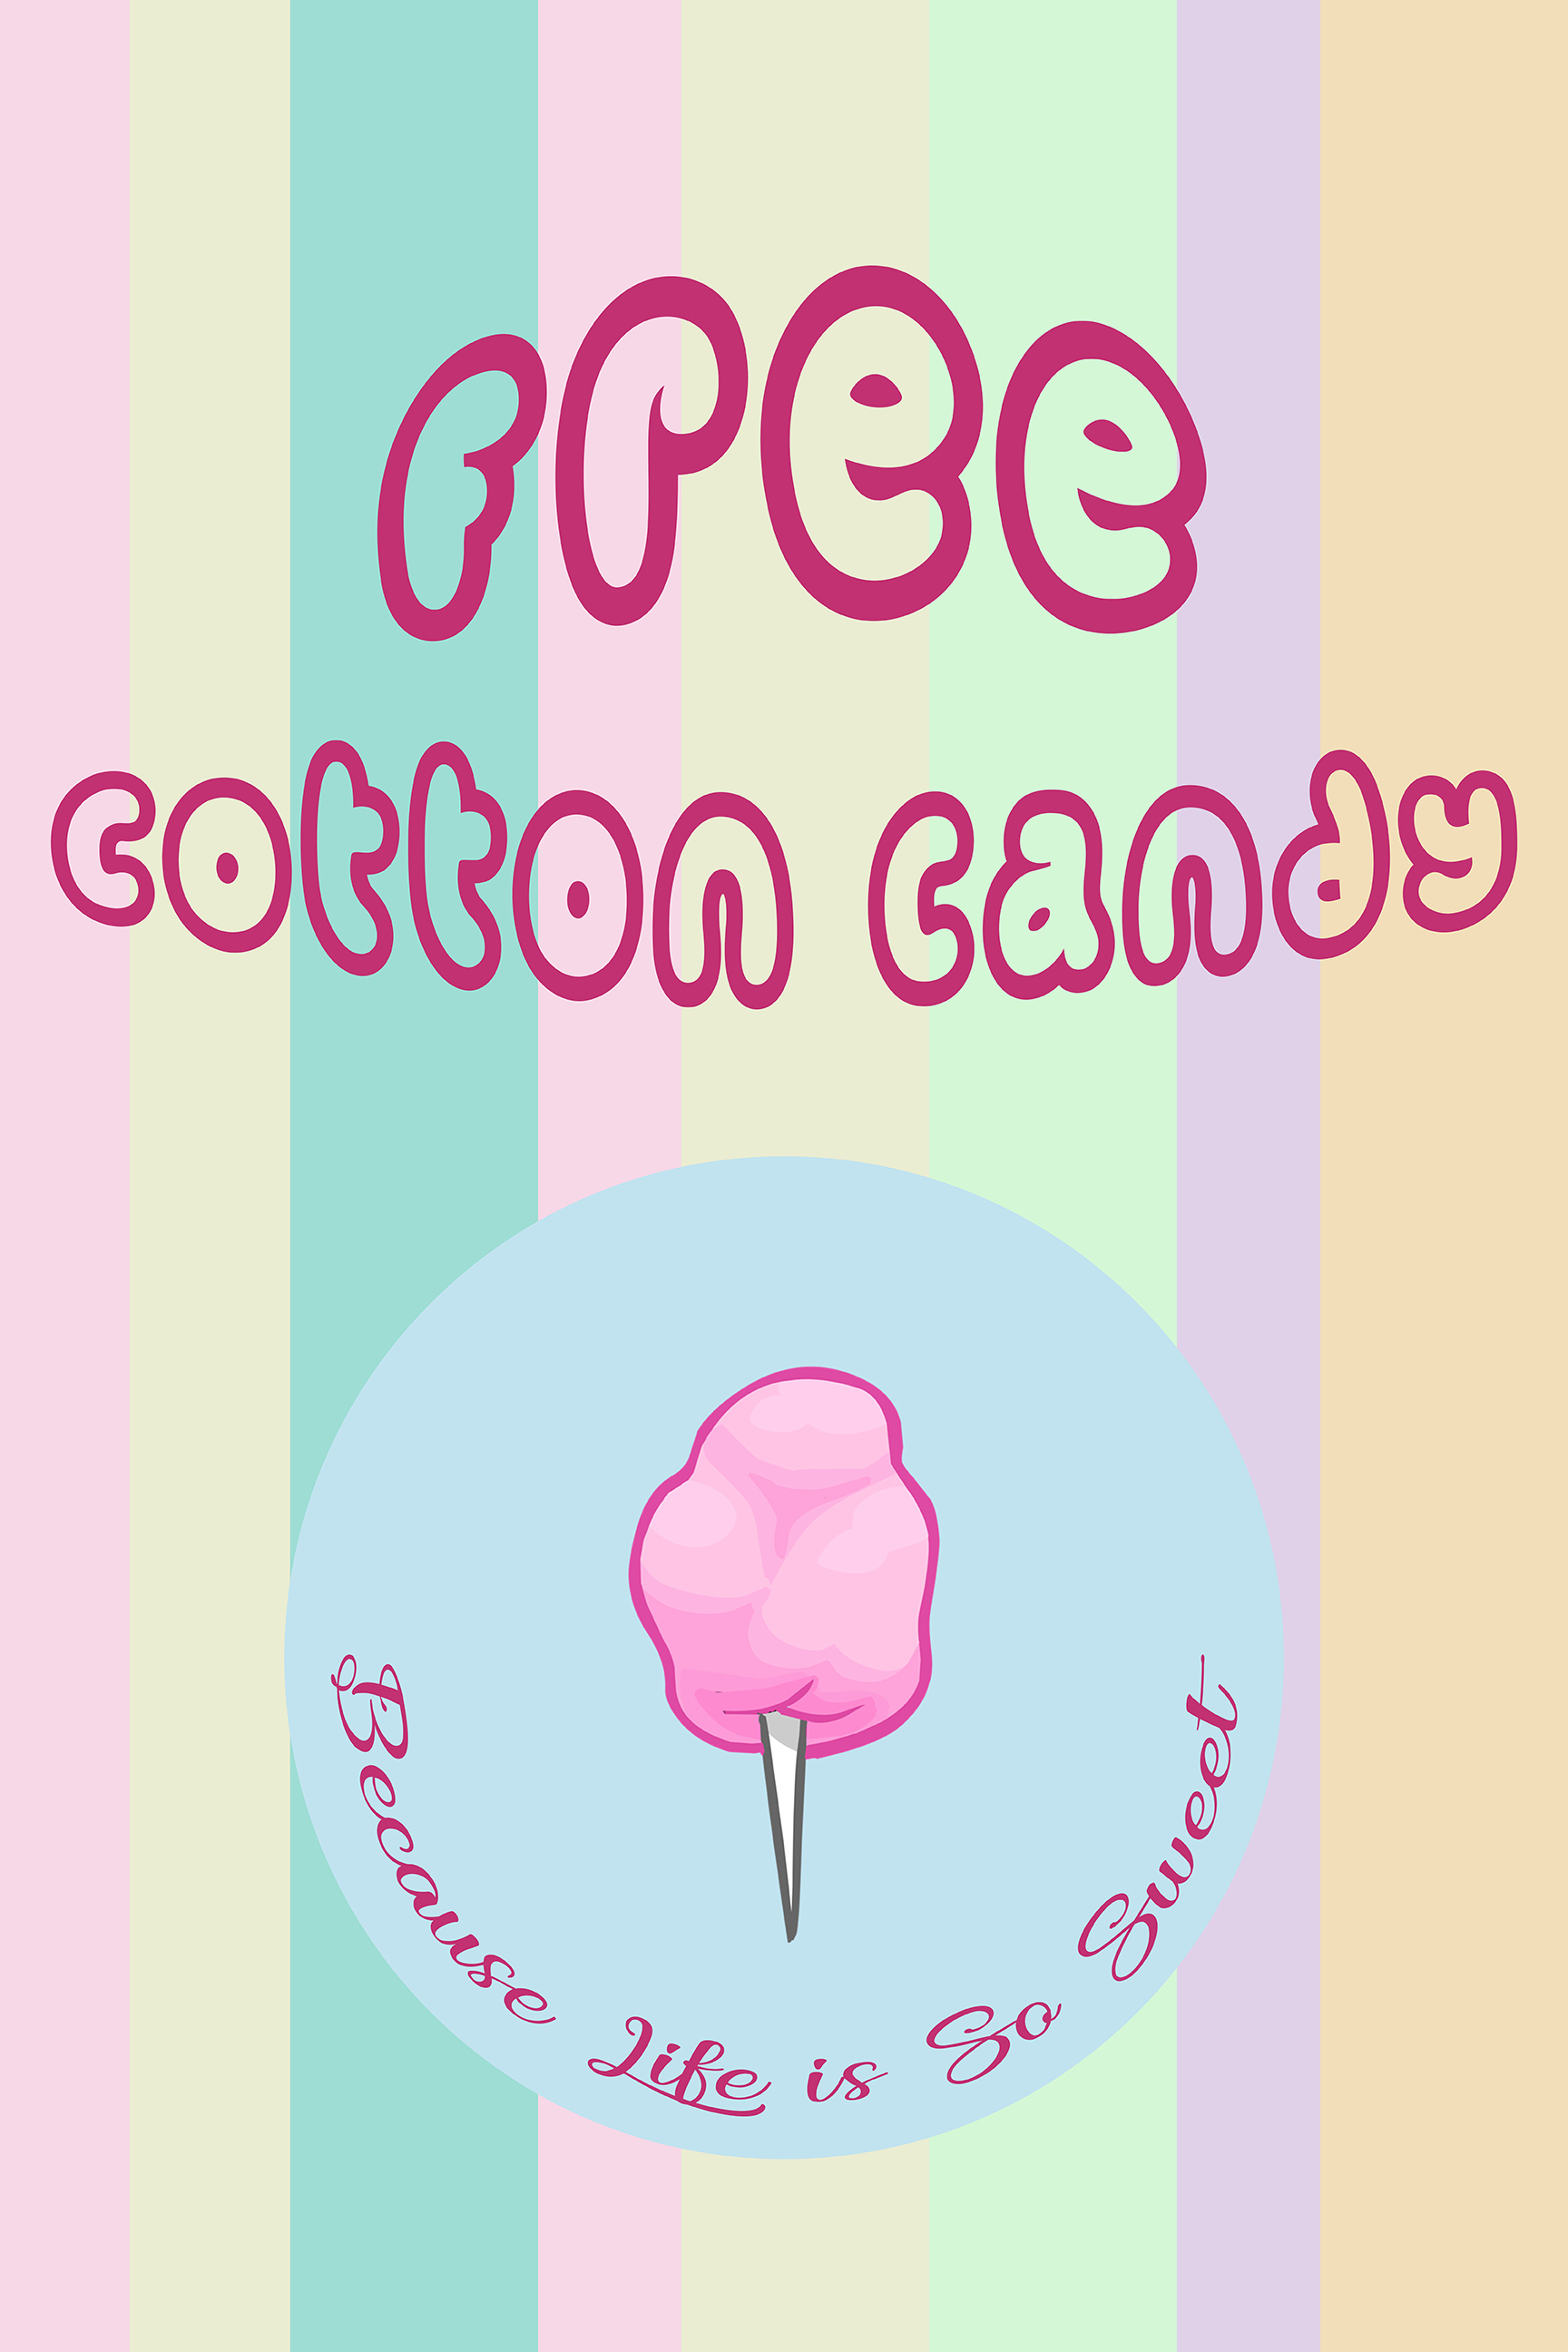 Spin, Roll & EnjoyWe have a cotton candy machine at Stoneham location! Please enjoy free cotton candy after your delicious meal :) -